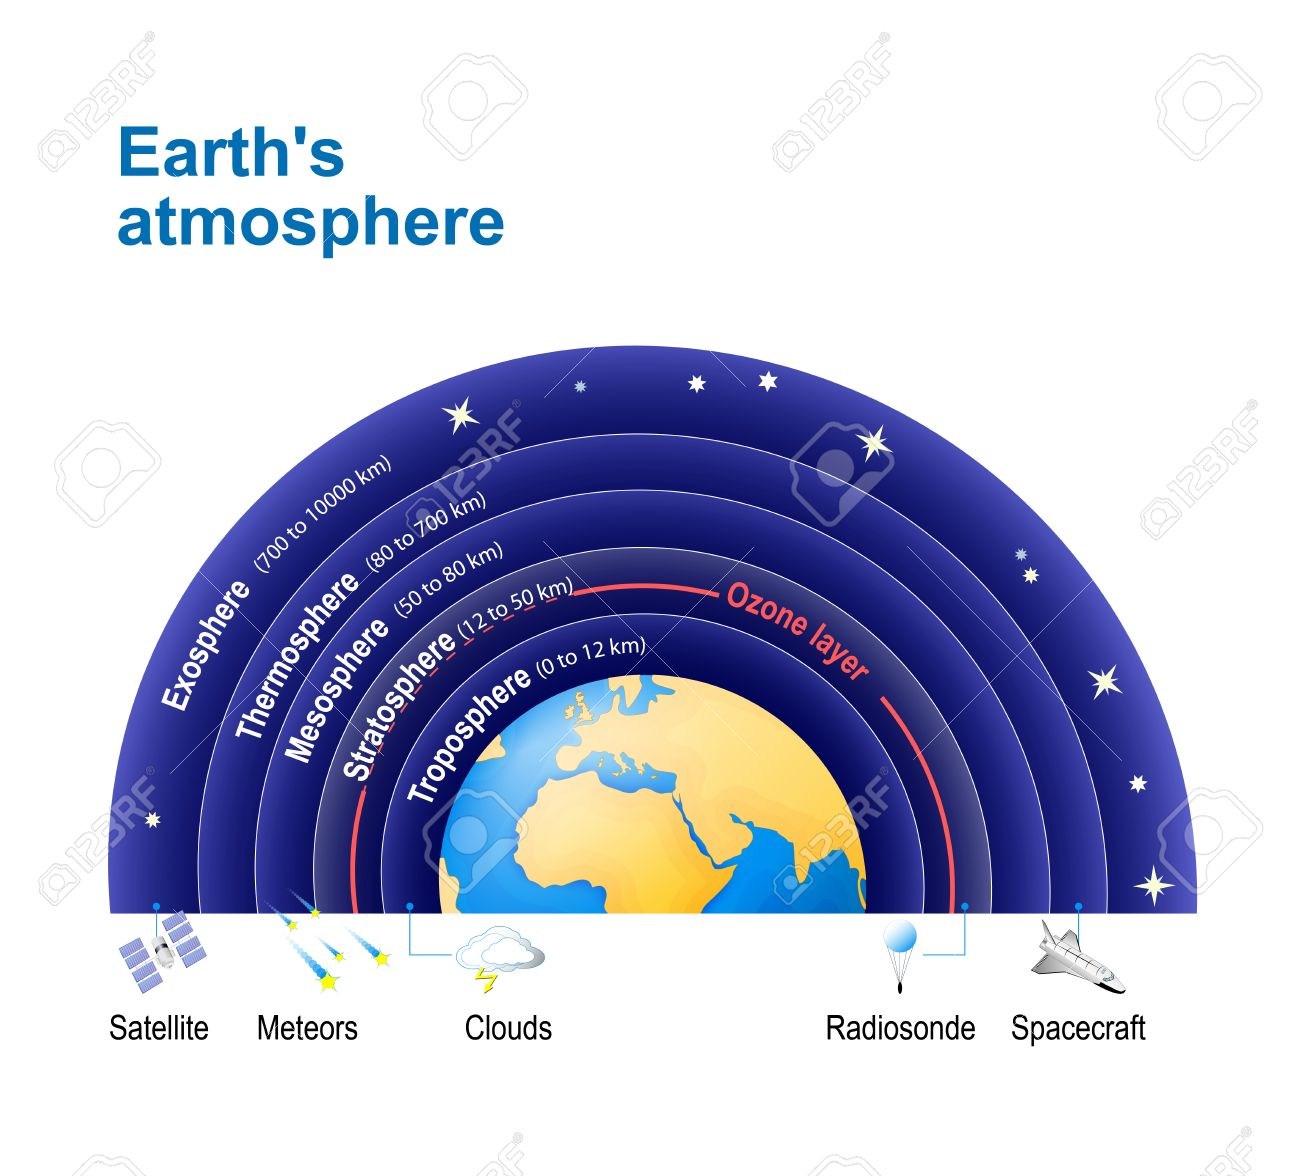 Earths atmosphere with ozone layer structure of the atmosphere earths atmosphere with ozone layer structure of the atmosphere exosphere thermosphere ccuart Image collections